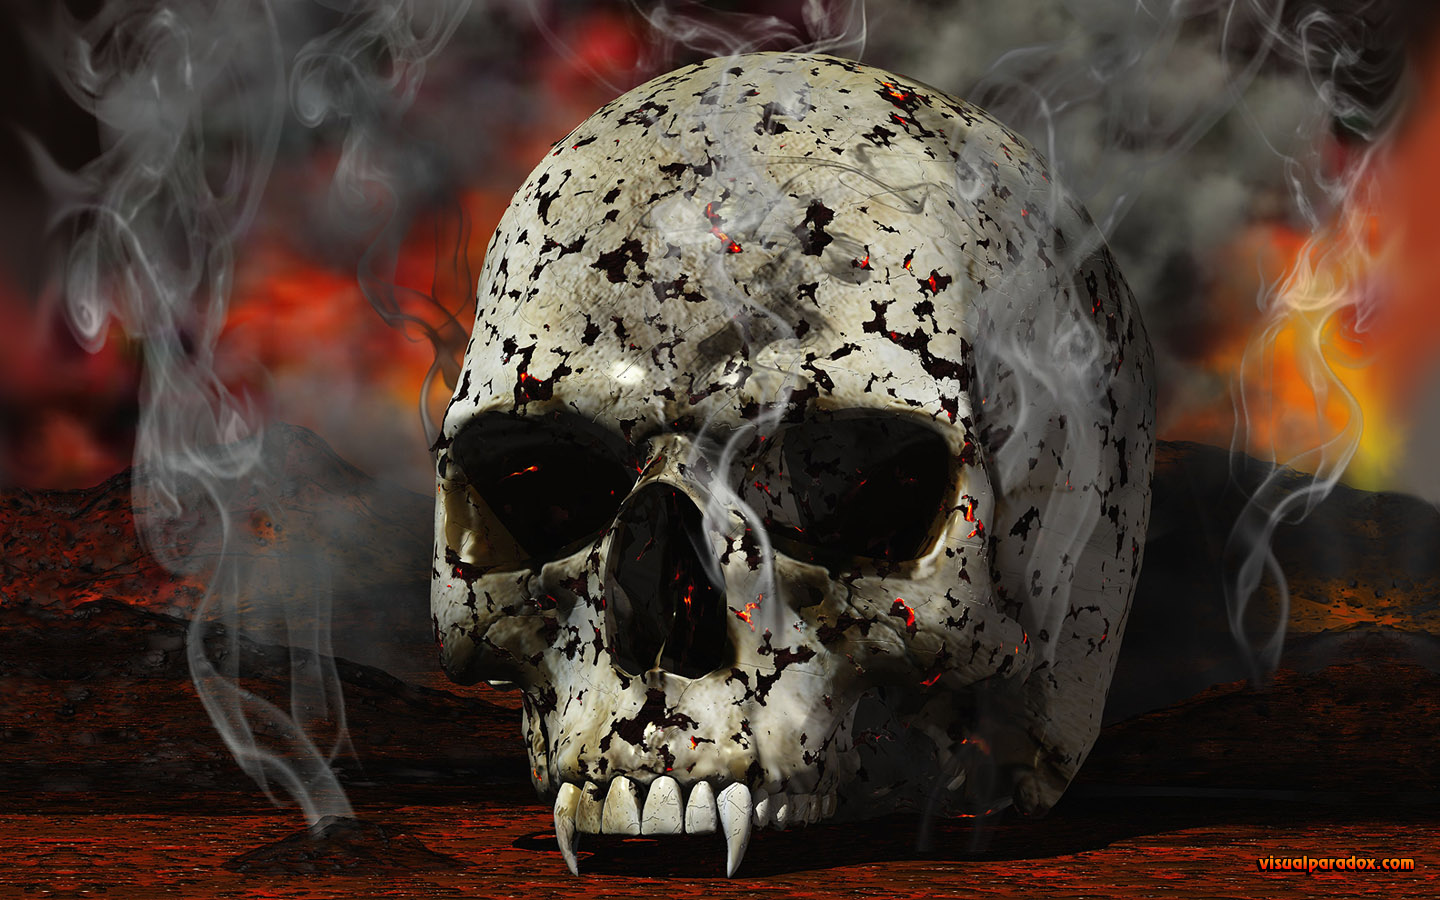 vampire, skull, burn, burnt, smoke, smoked, fire, demon, horror, scary, undead, Nosferatu, vampyre, 3d, wallpaper, widescreen